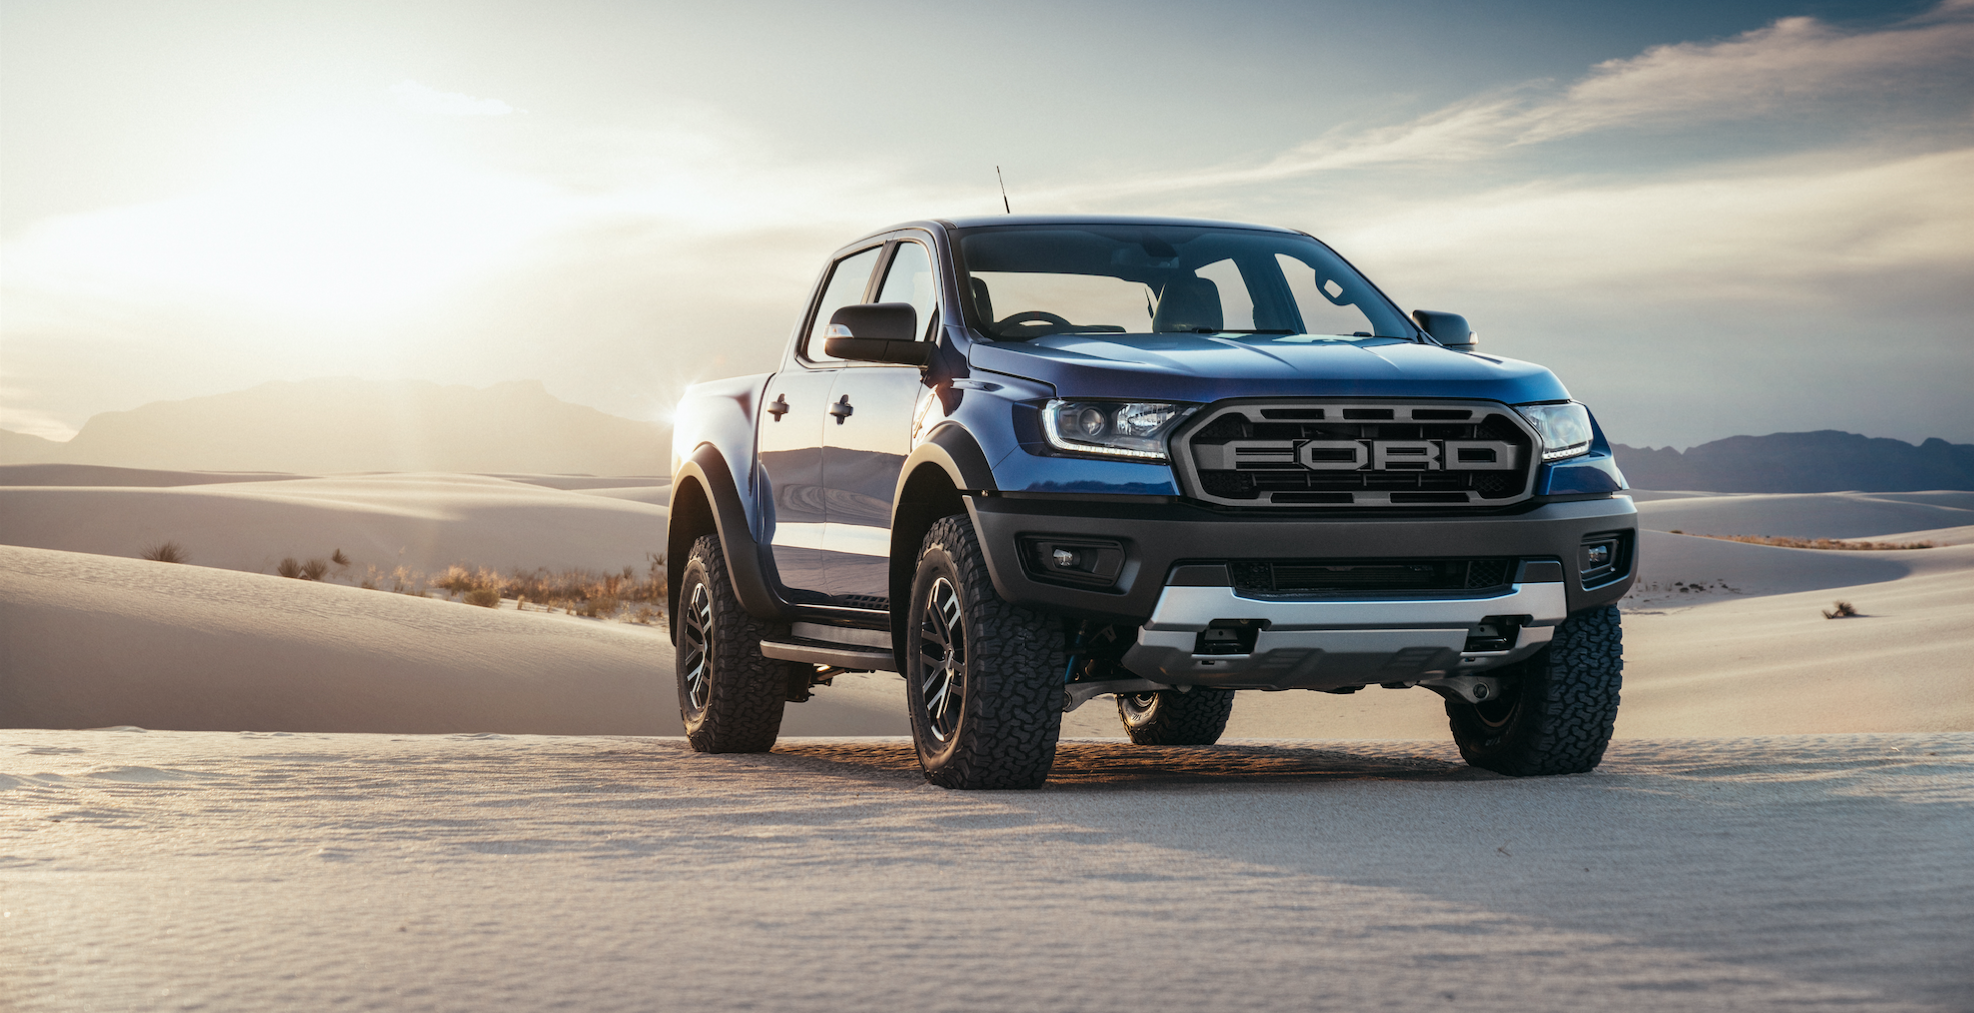 30 Best Review Best Towing Capacity Of 2019 Ford Ranger New Interior Specs by Best Towing Capacity Of 2019 Ford Ranger New Interior